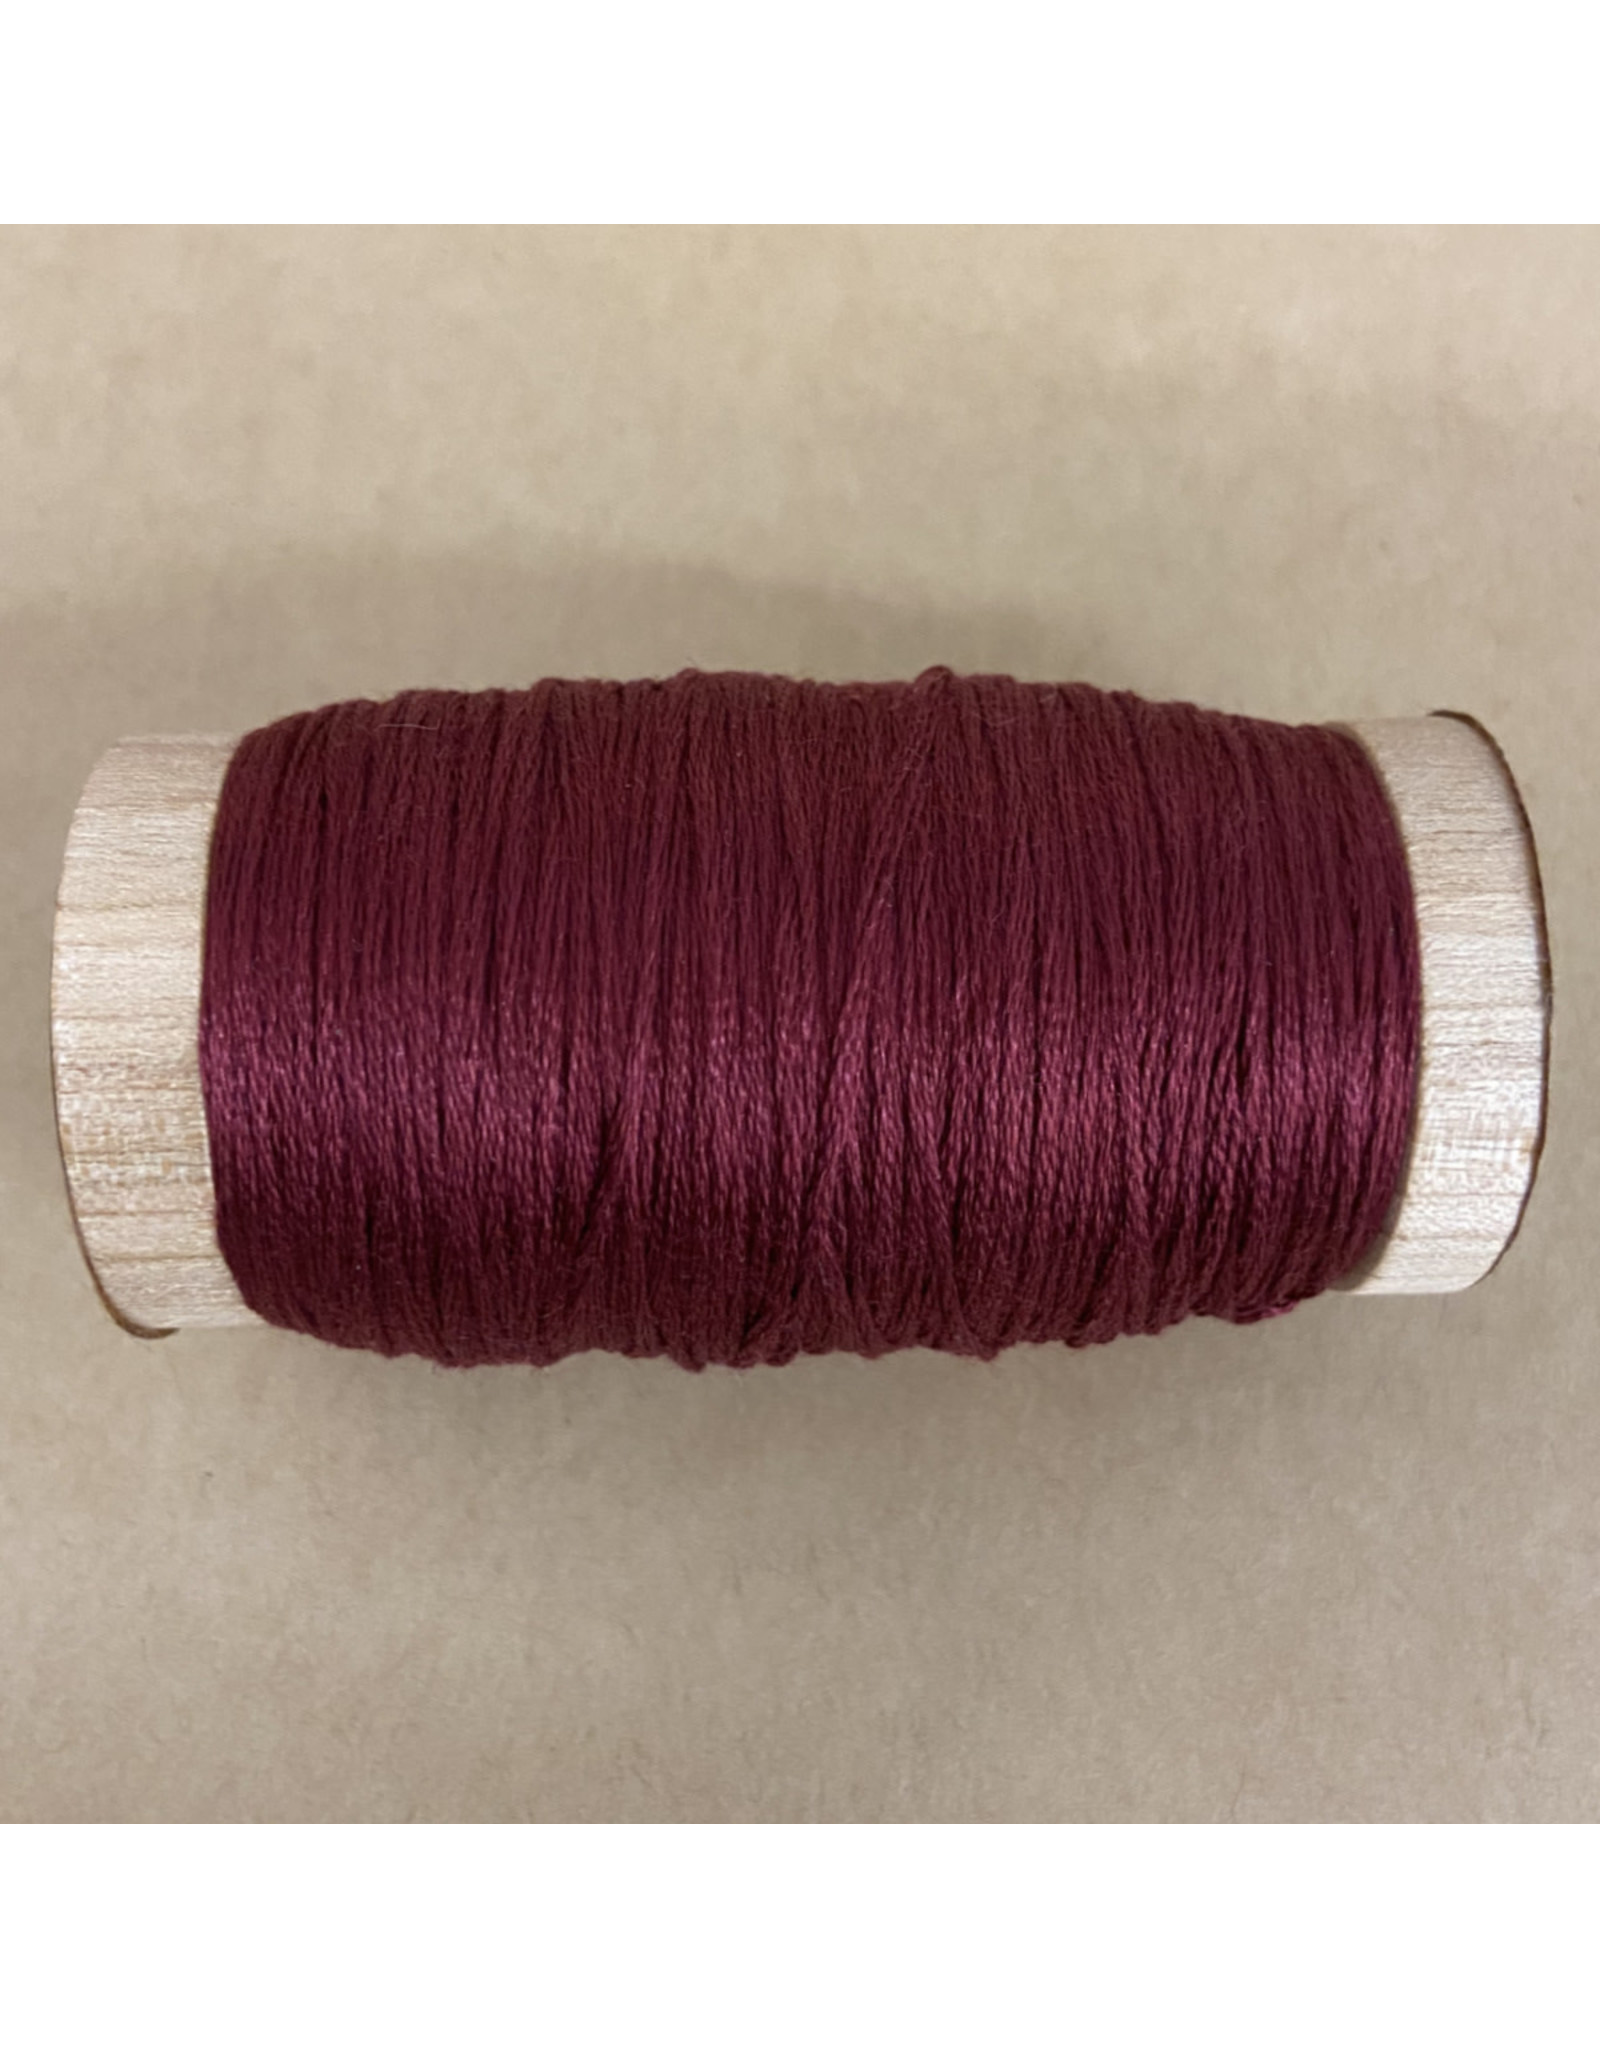 PD Embroidery Floss, Extra Large Spool, Burgandy